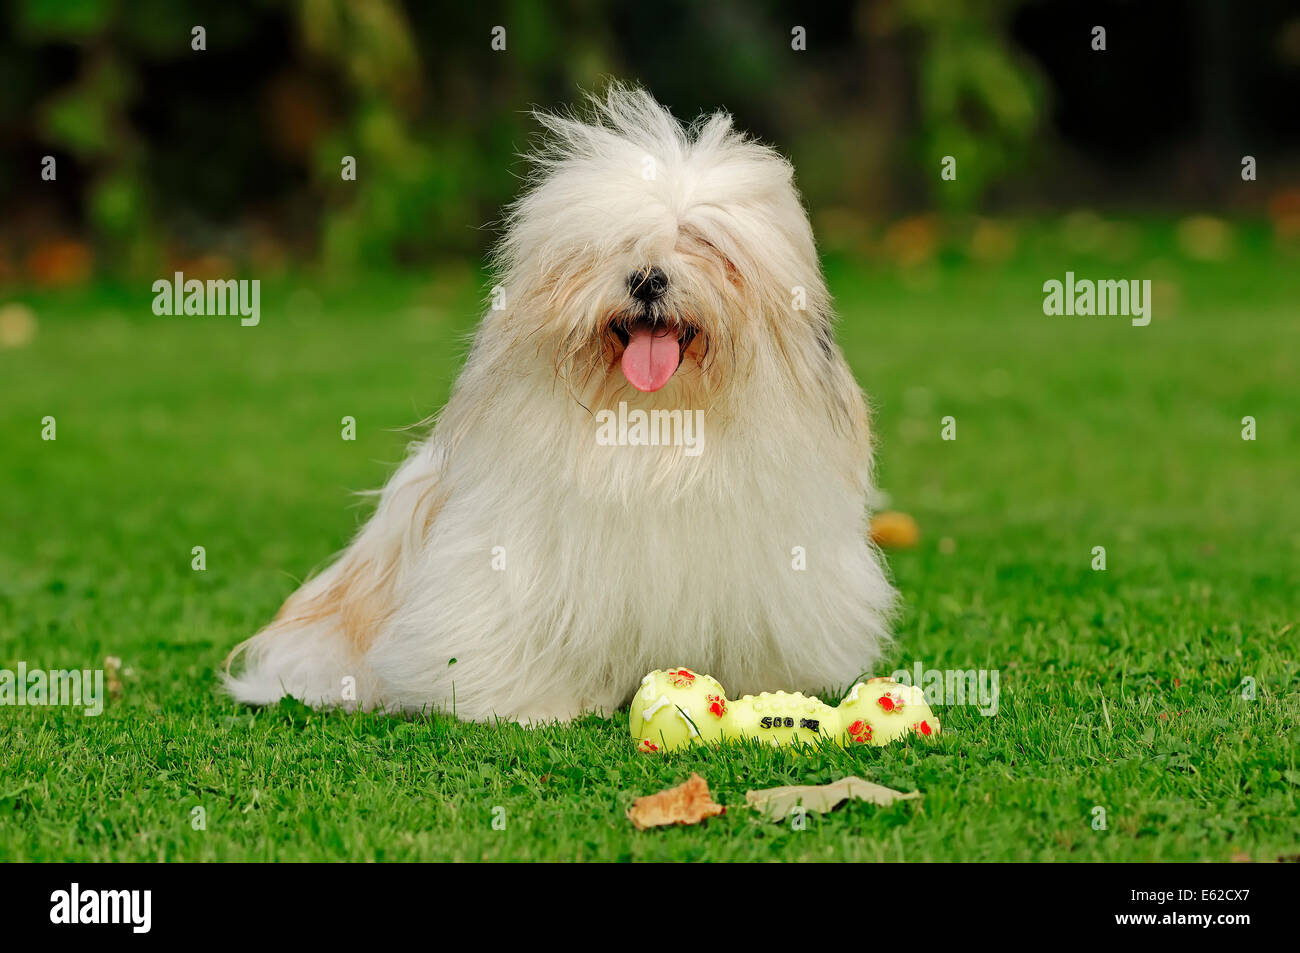 Coton de Tulear (Canis lupus familiaris) with toy Stock Photo